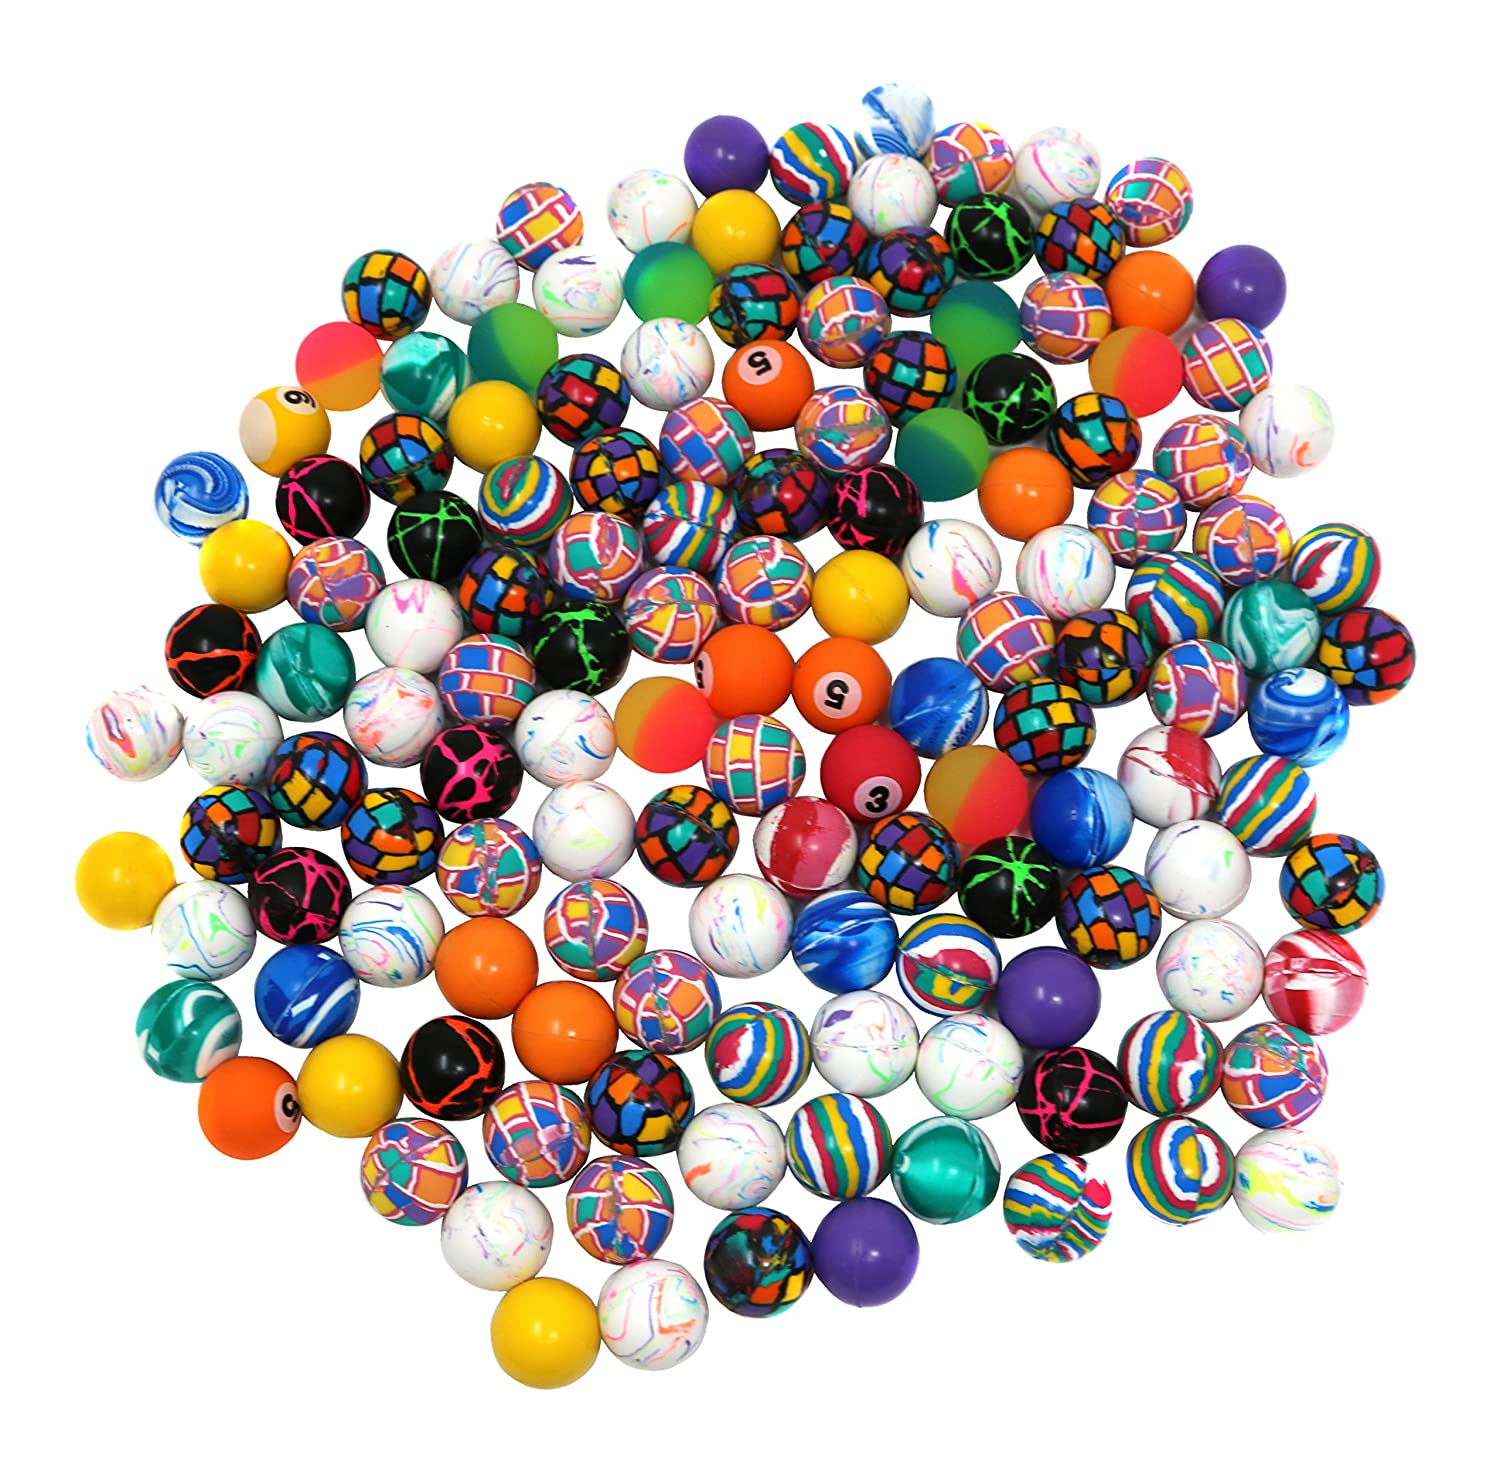 Bulk Pack Of 144 Super Bouncy Ball Assortment Mini Bouncing Balls In Exciting Colors And Styles SN Incorp